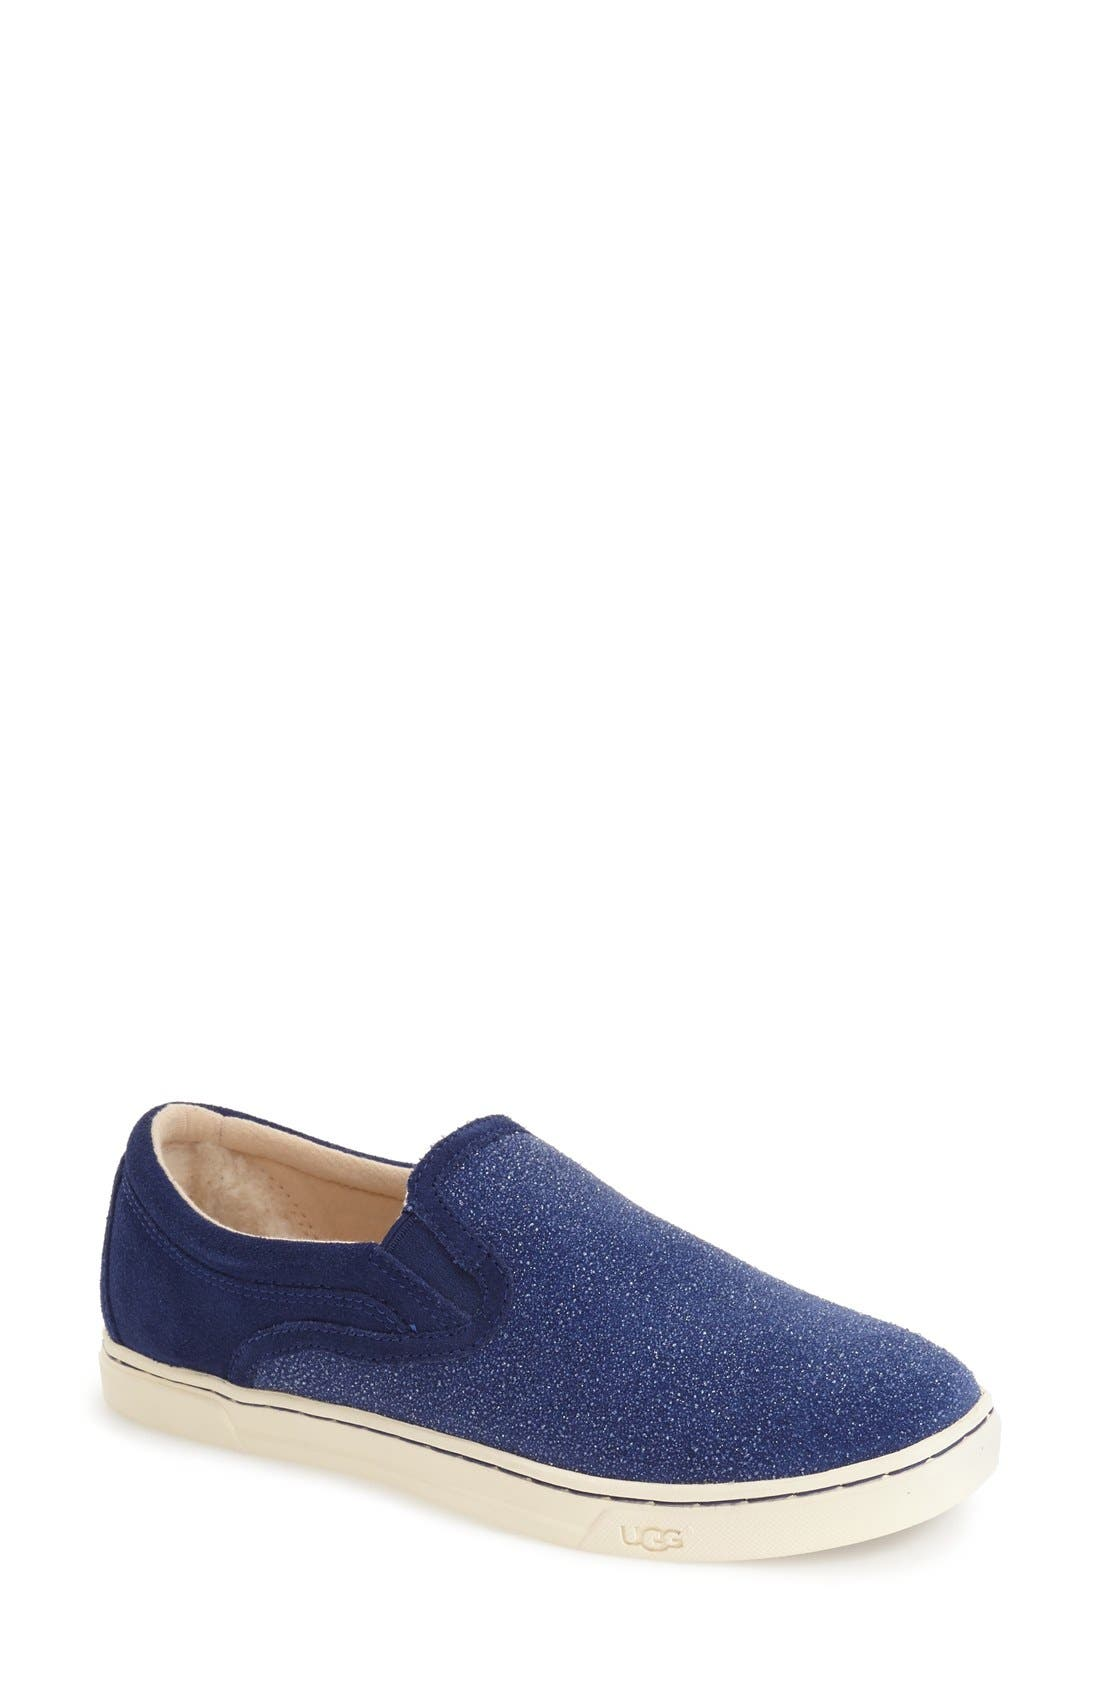 Fierce Slip-On Sneaker,                         Main,                         color, Night Sky Fabric